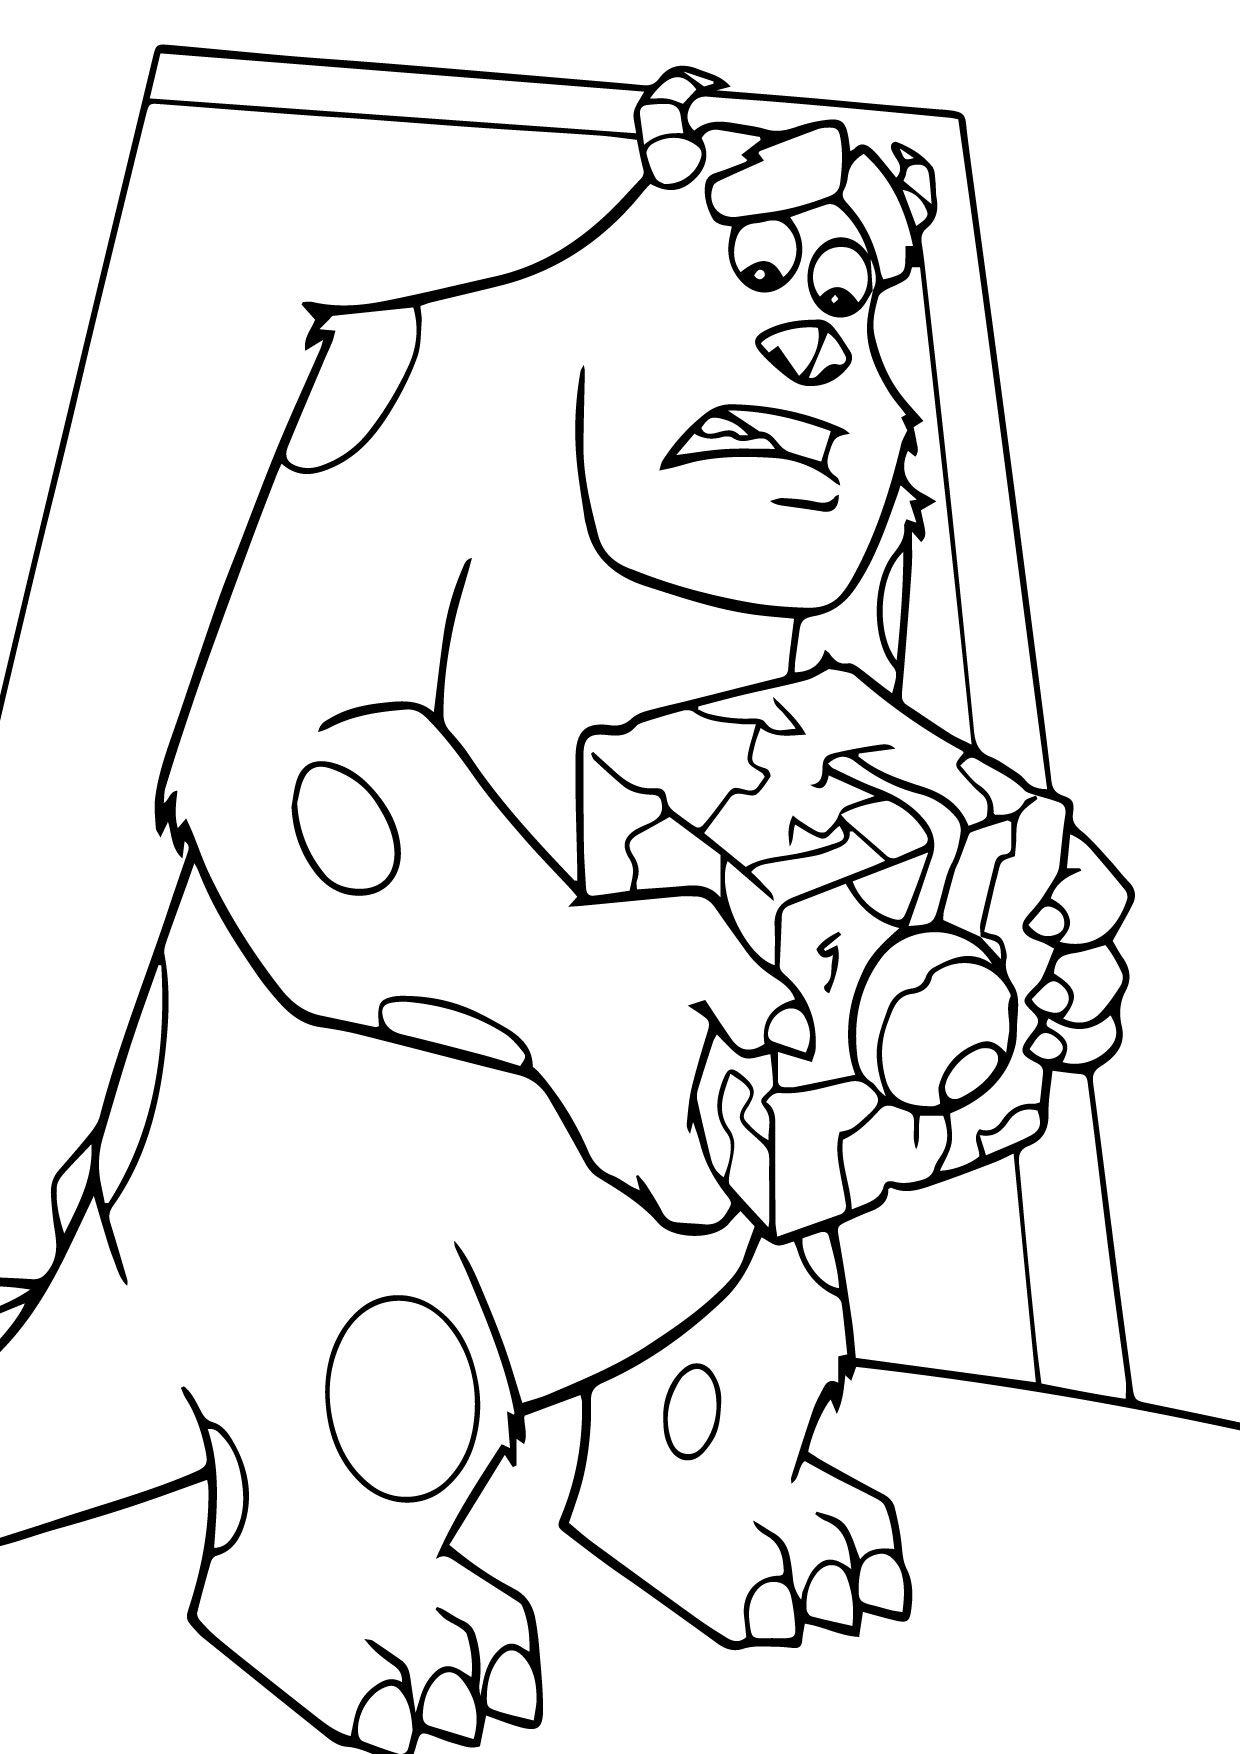 Nice Coloring Page 10 09 2015 032340 01